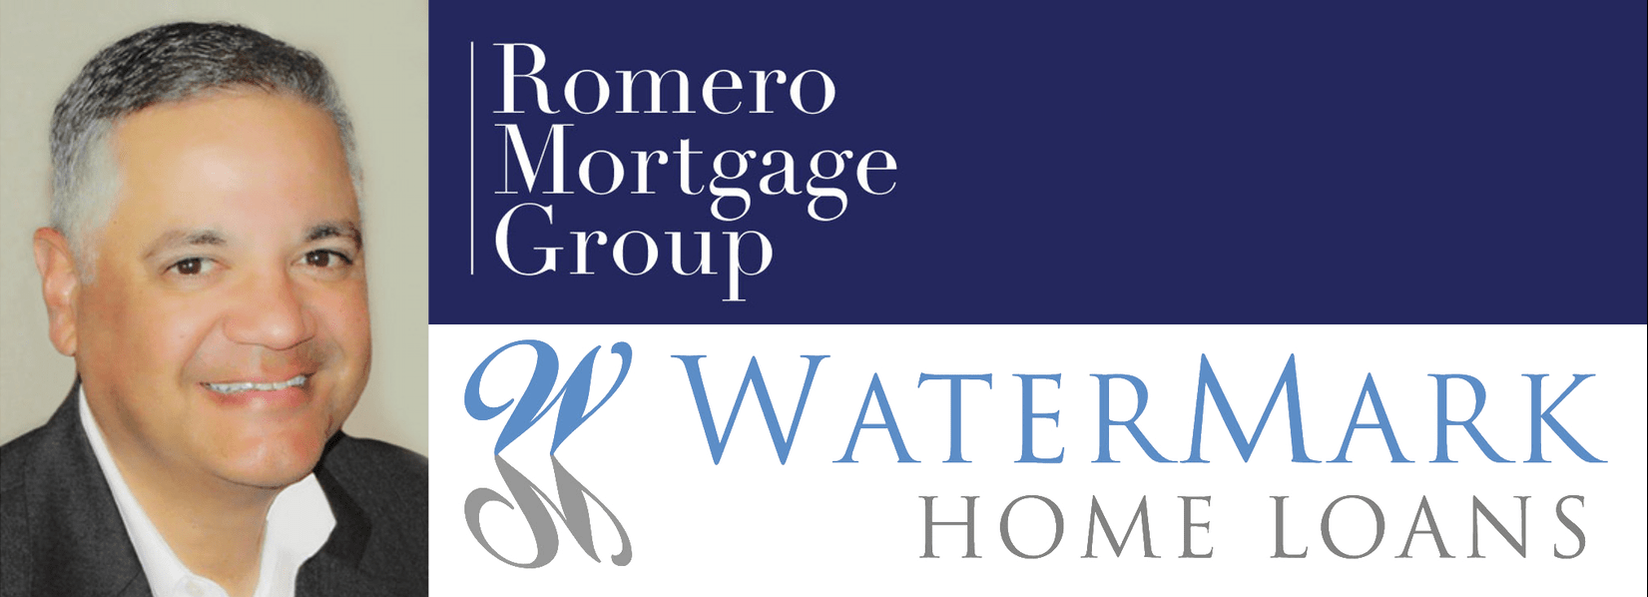 Get your mortgage for your new home in Arizona with watermark home loans.